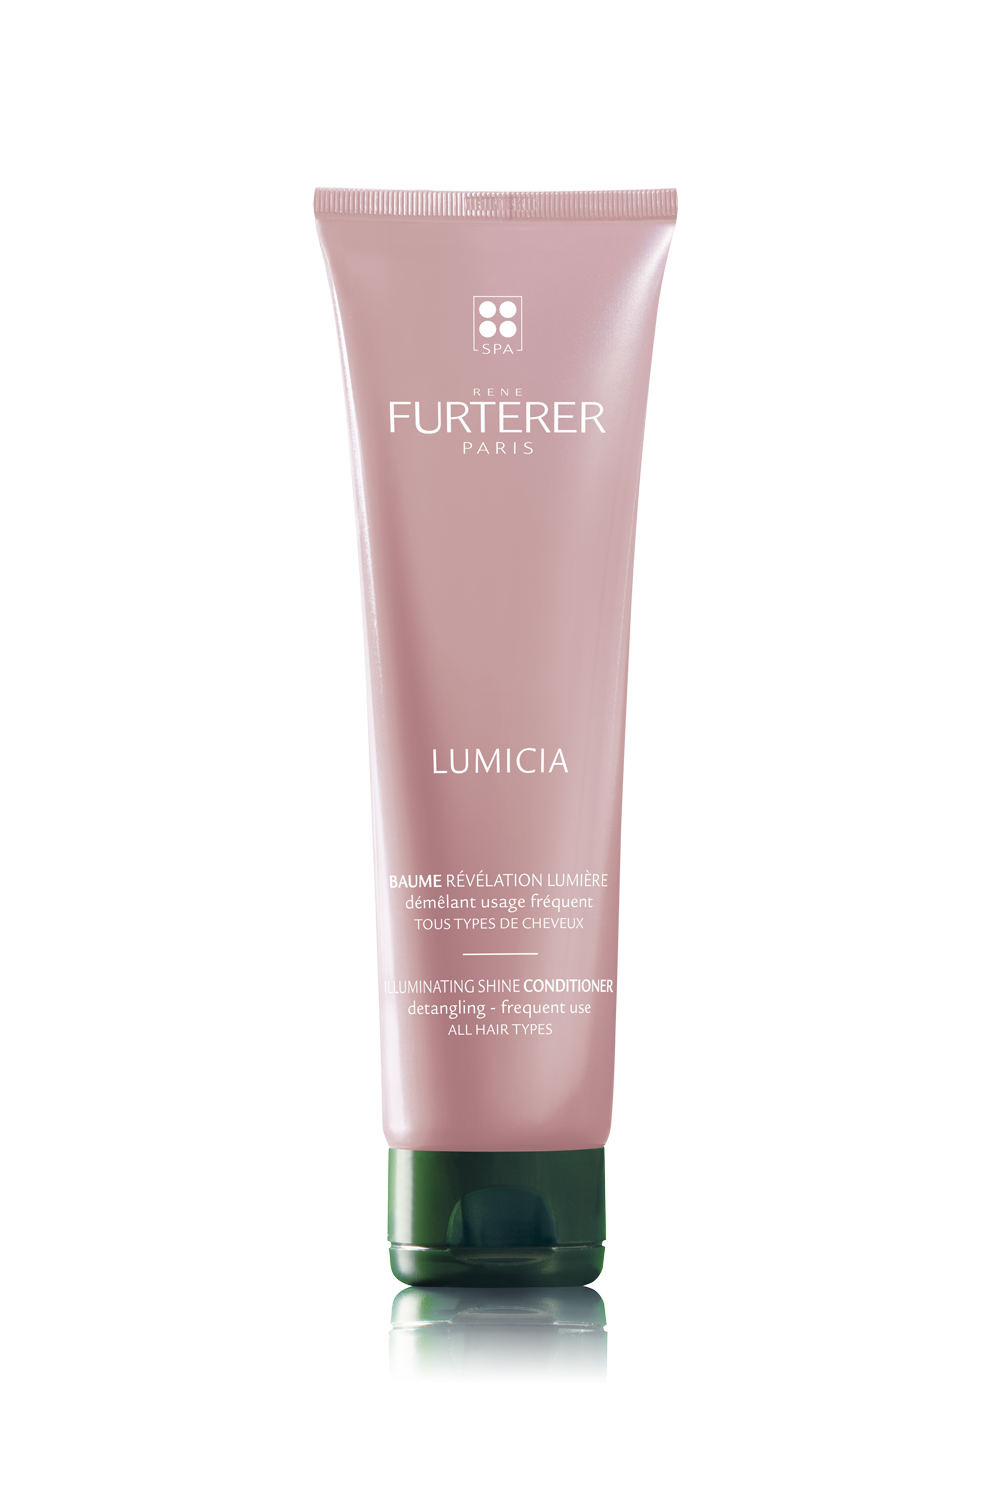 LUMICIA Illuminating shine conditioner René Furterer